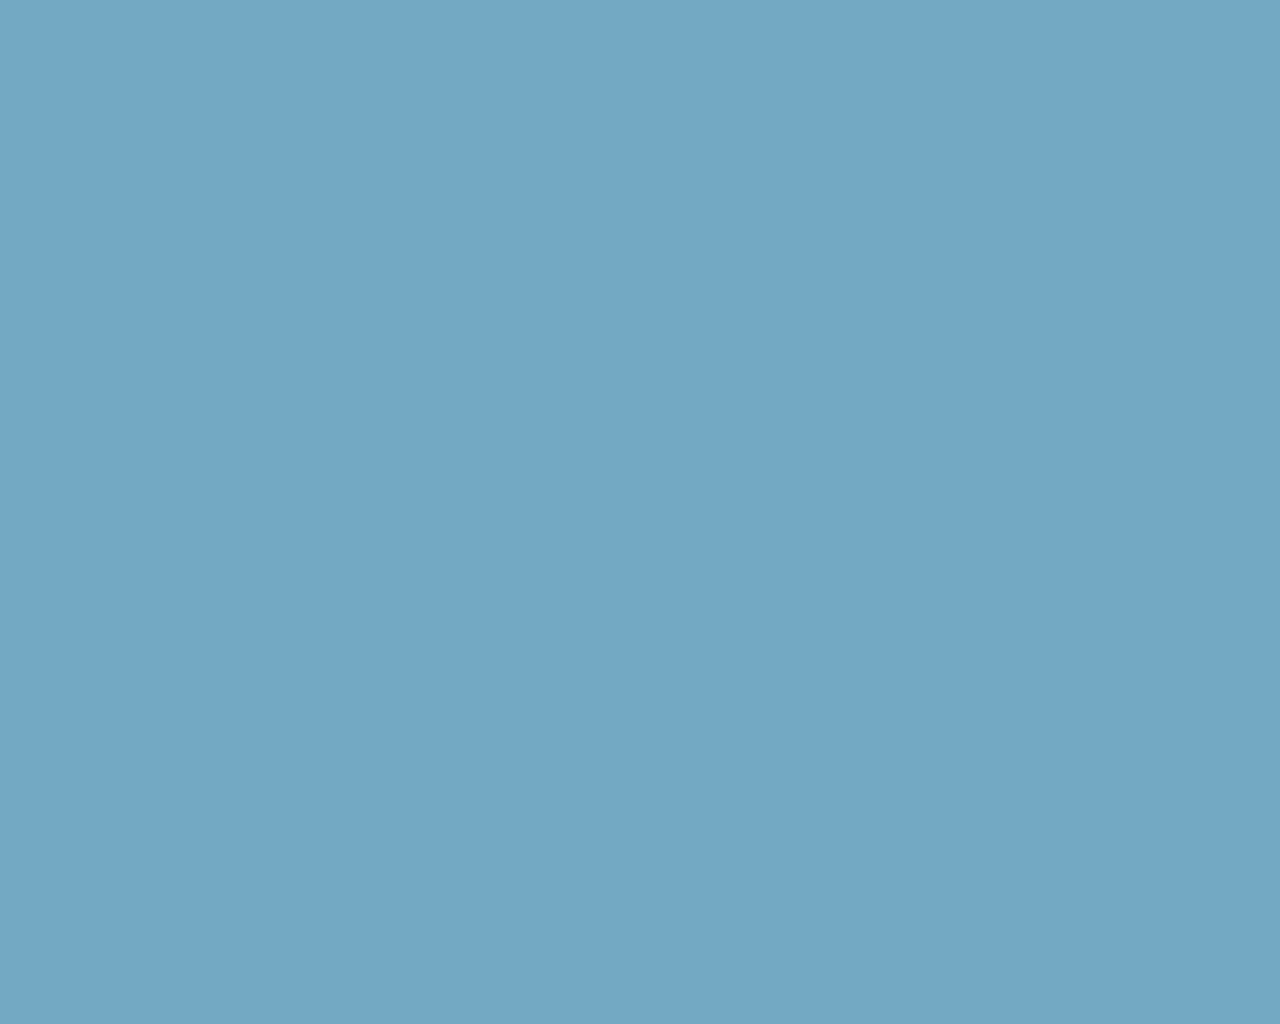 1280x1024 Moonstone Blue Solid Color Background